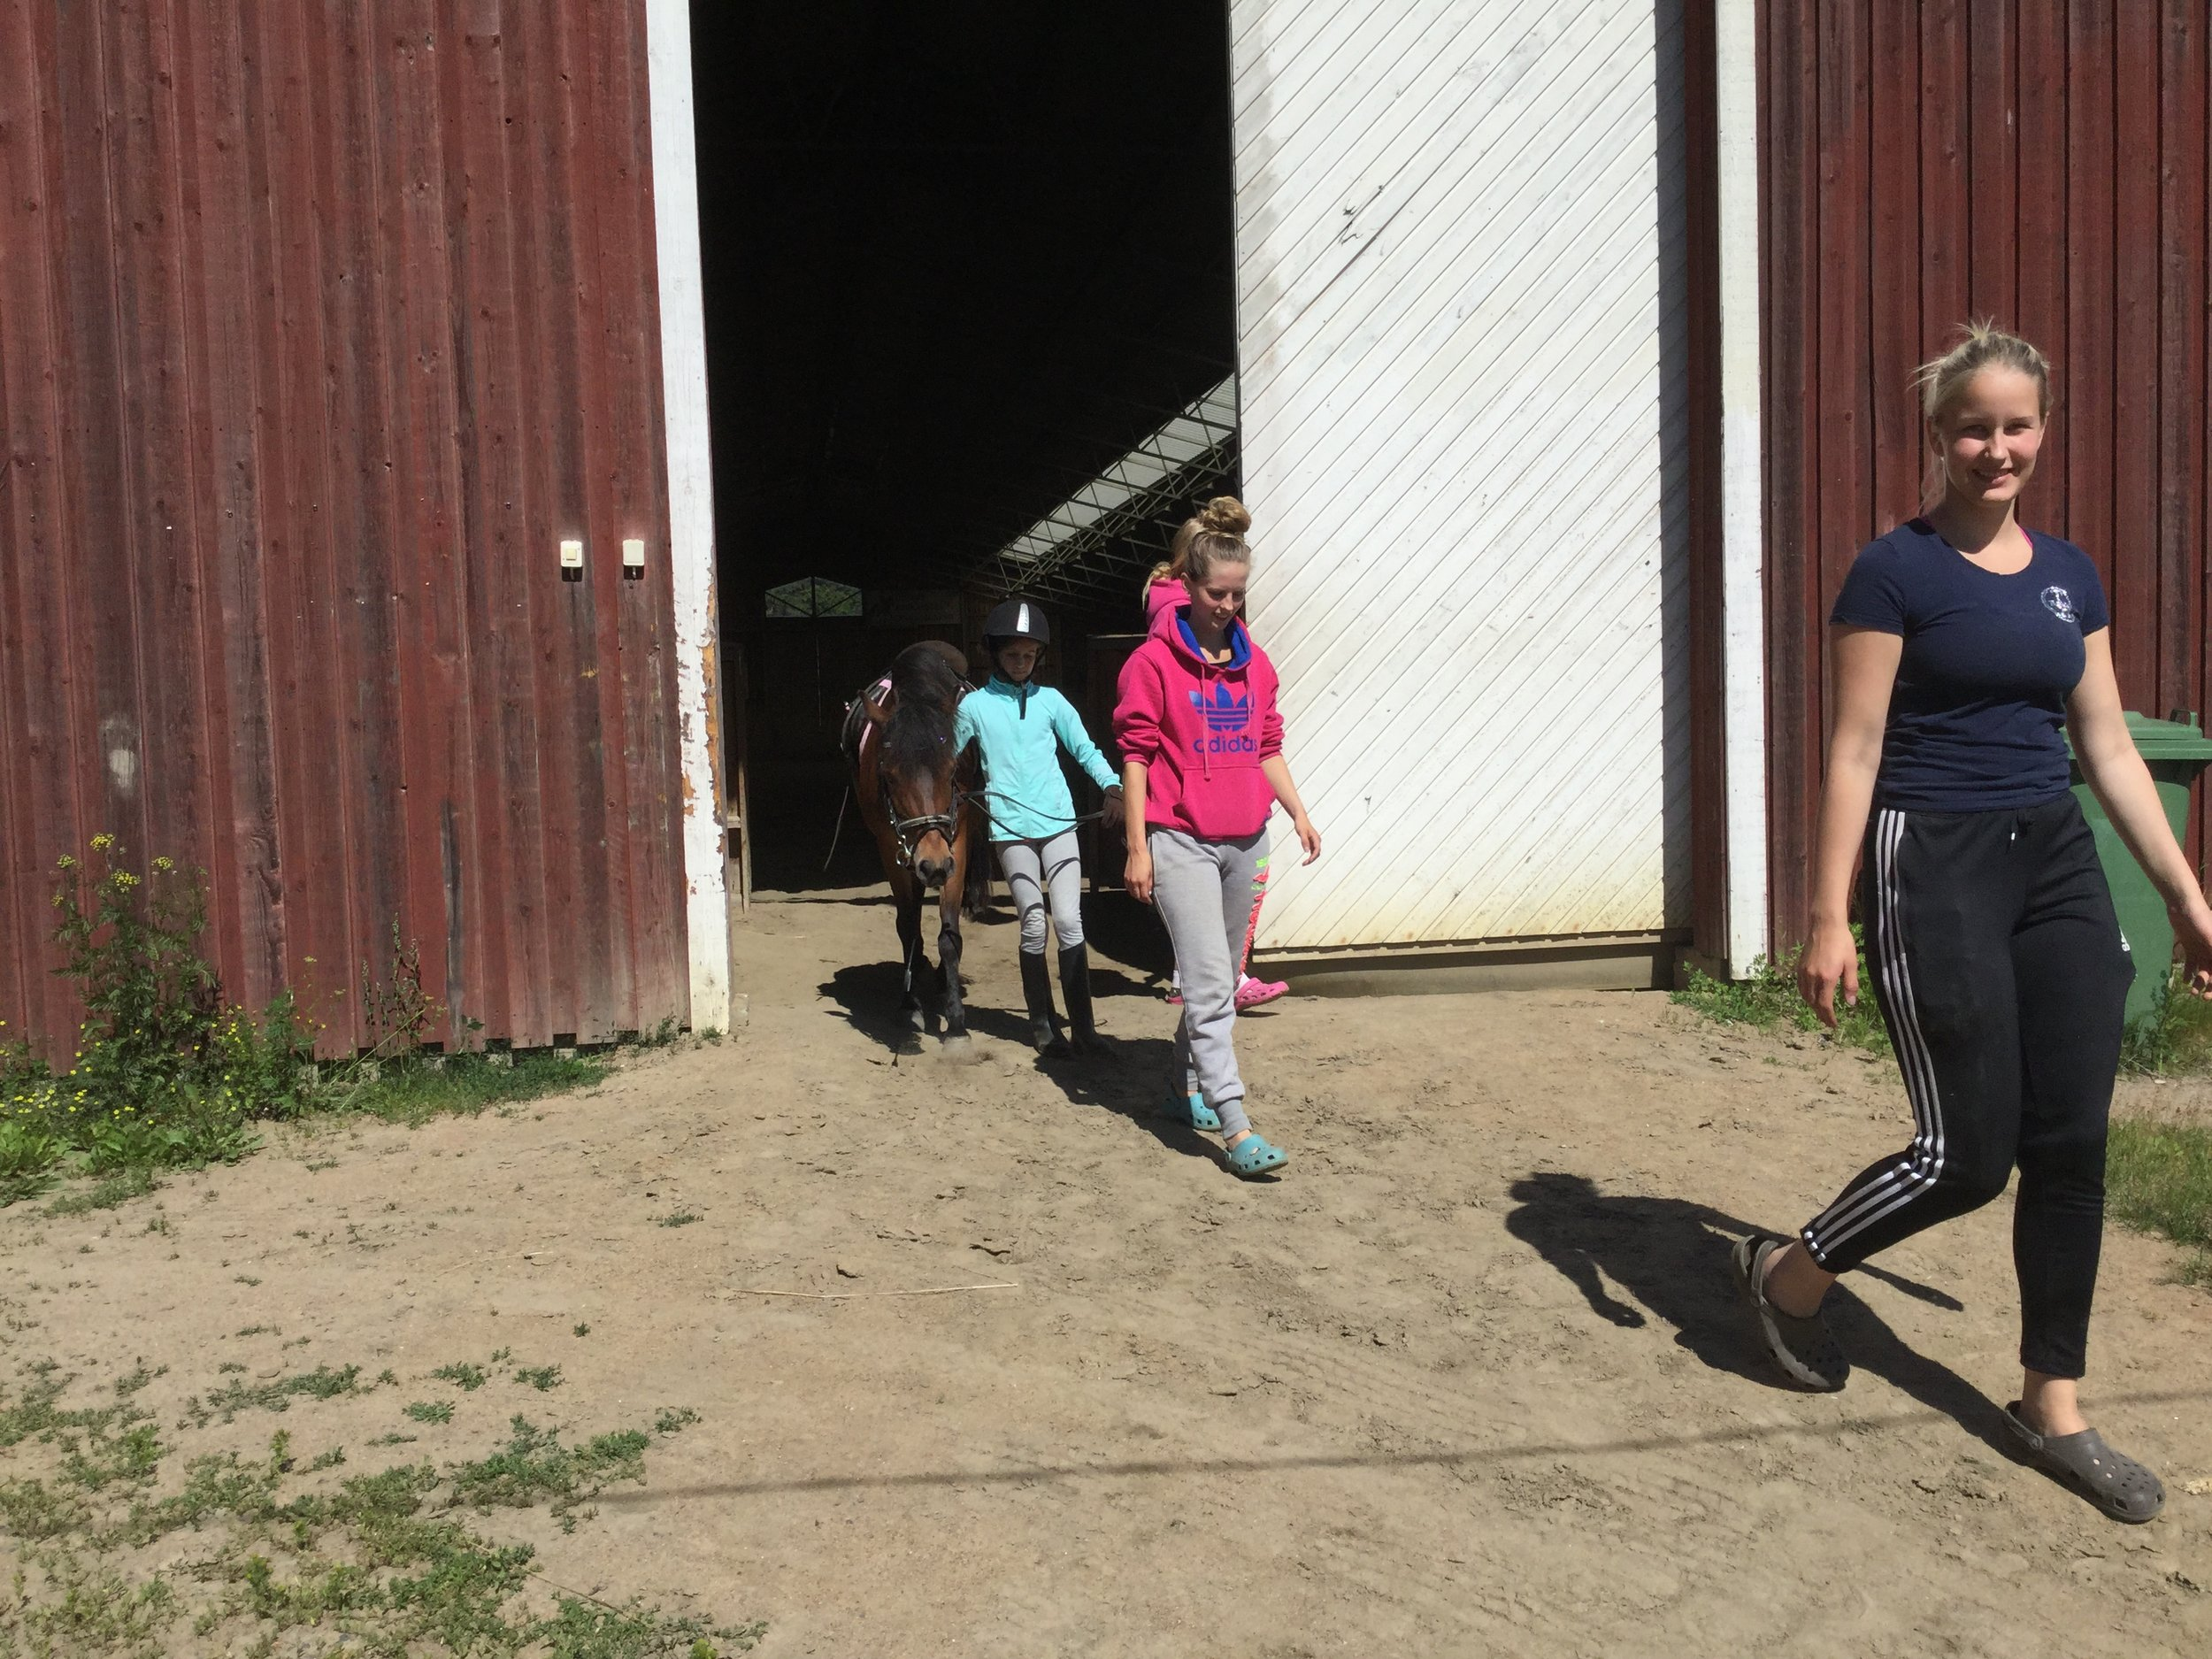 Coach Siiri in the front, and Lili leading Guni out after the class.